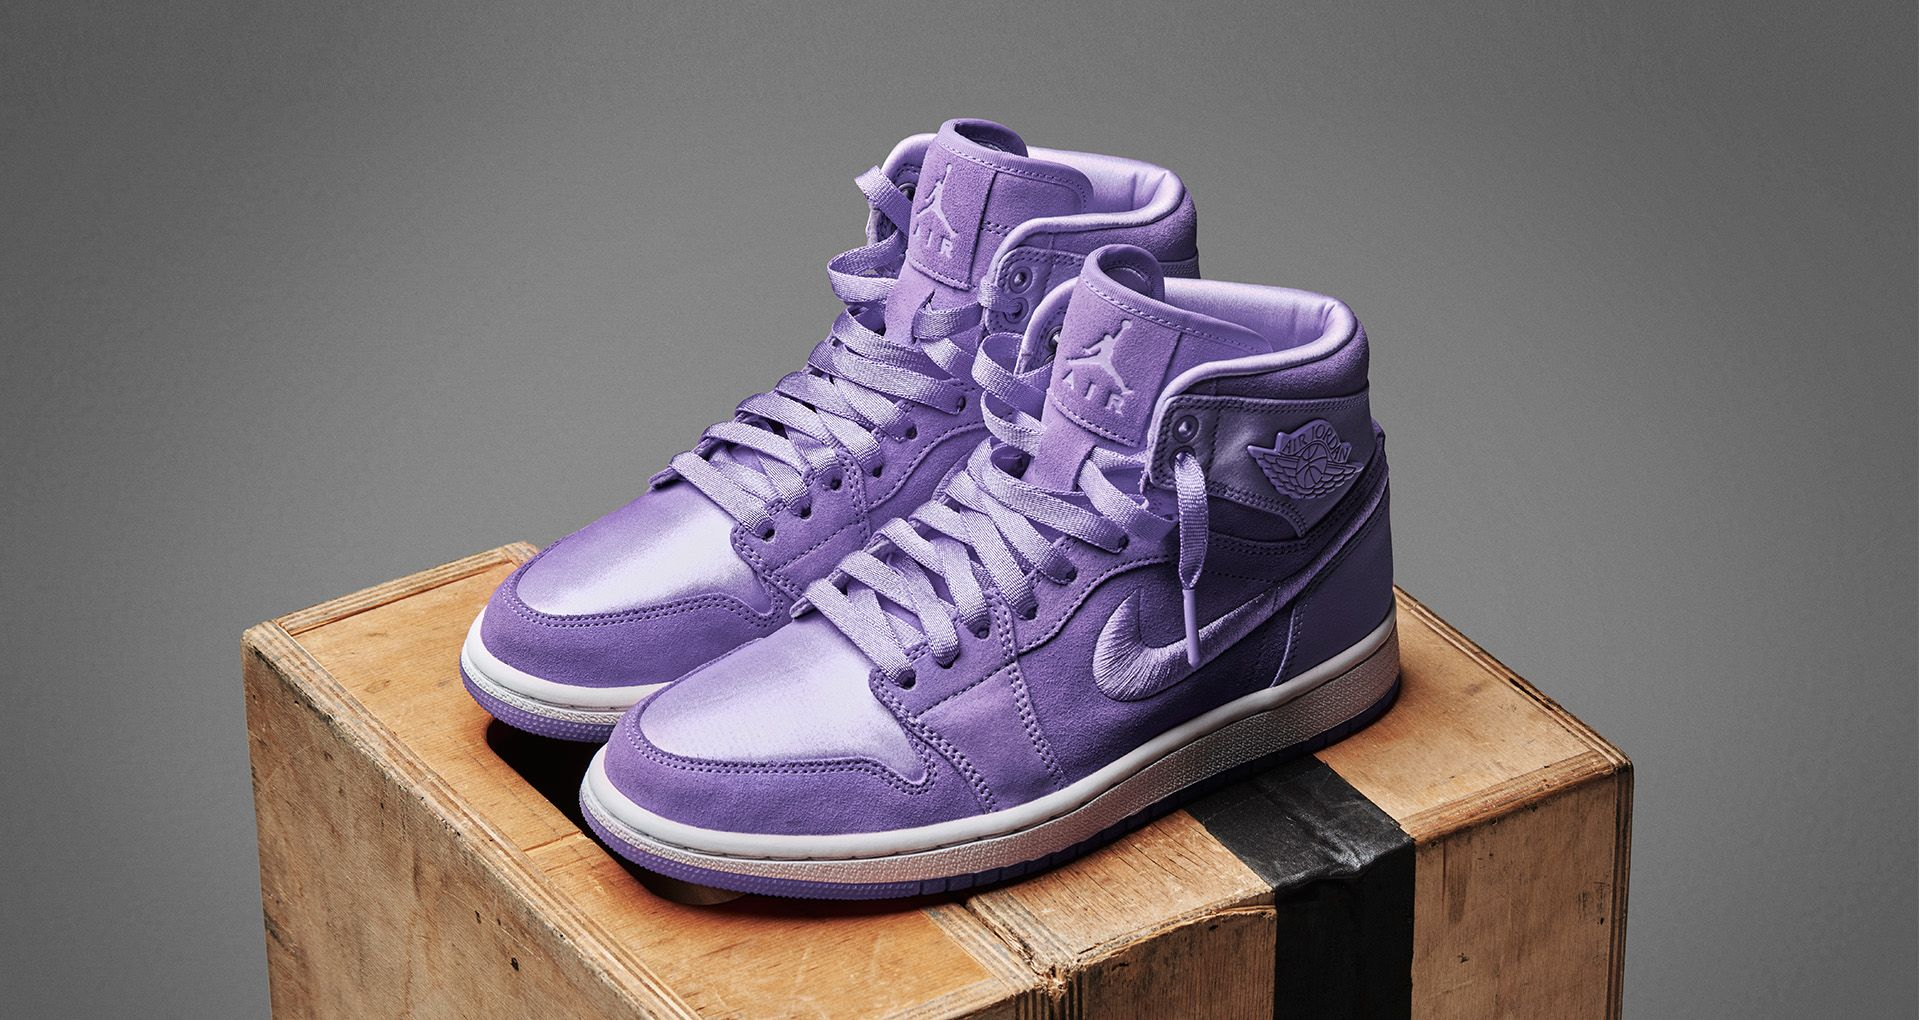 los angeles fc524 76315 Women's Air Jordan 1 Retro High 'Purple Earth' Release Date ...